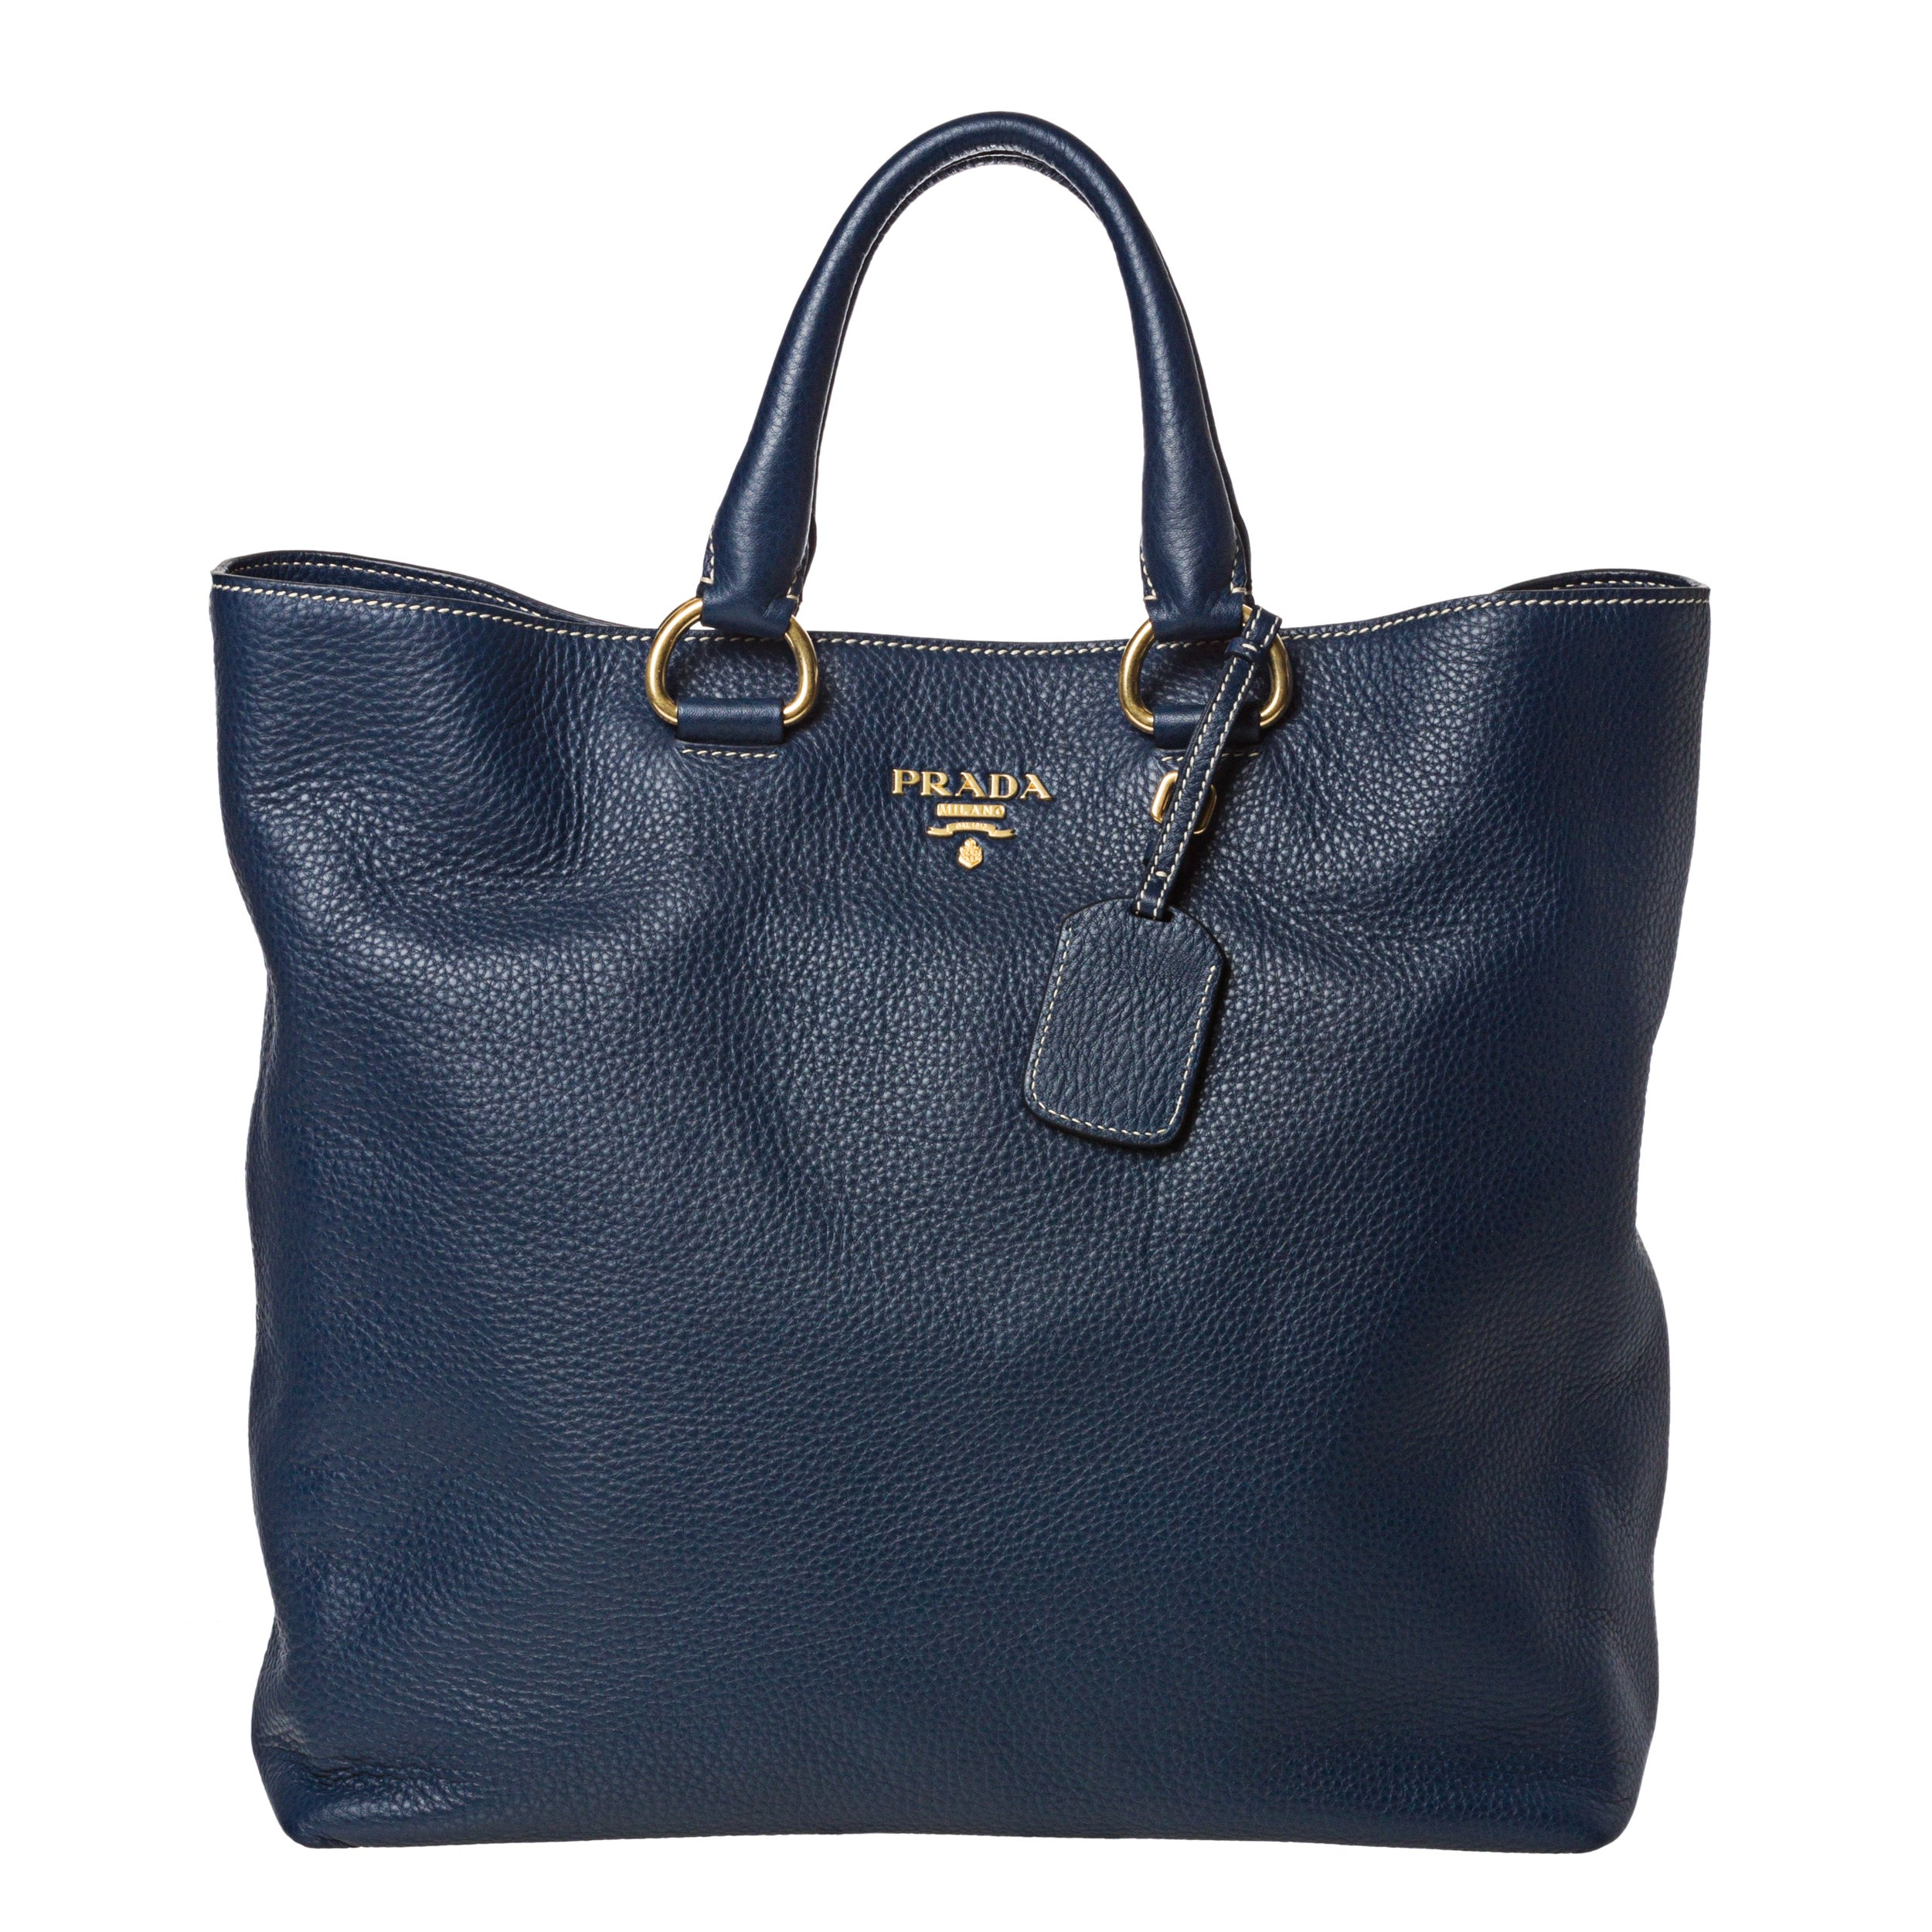 ... cheapest prada x27dainox27 navy leather tote bag e13bd 477ec c8a472e6a0def